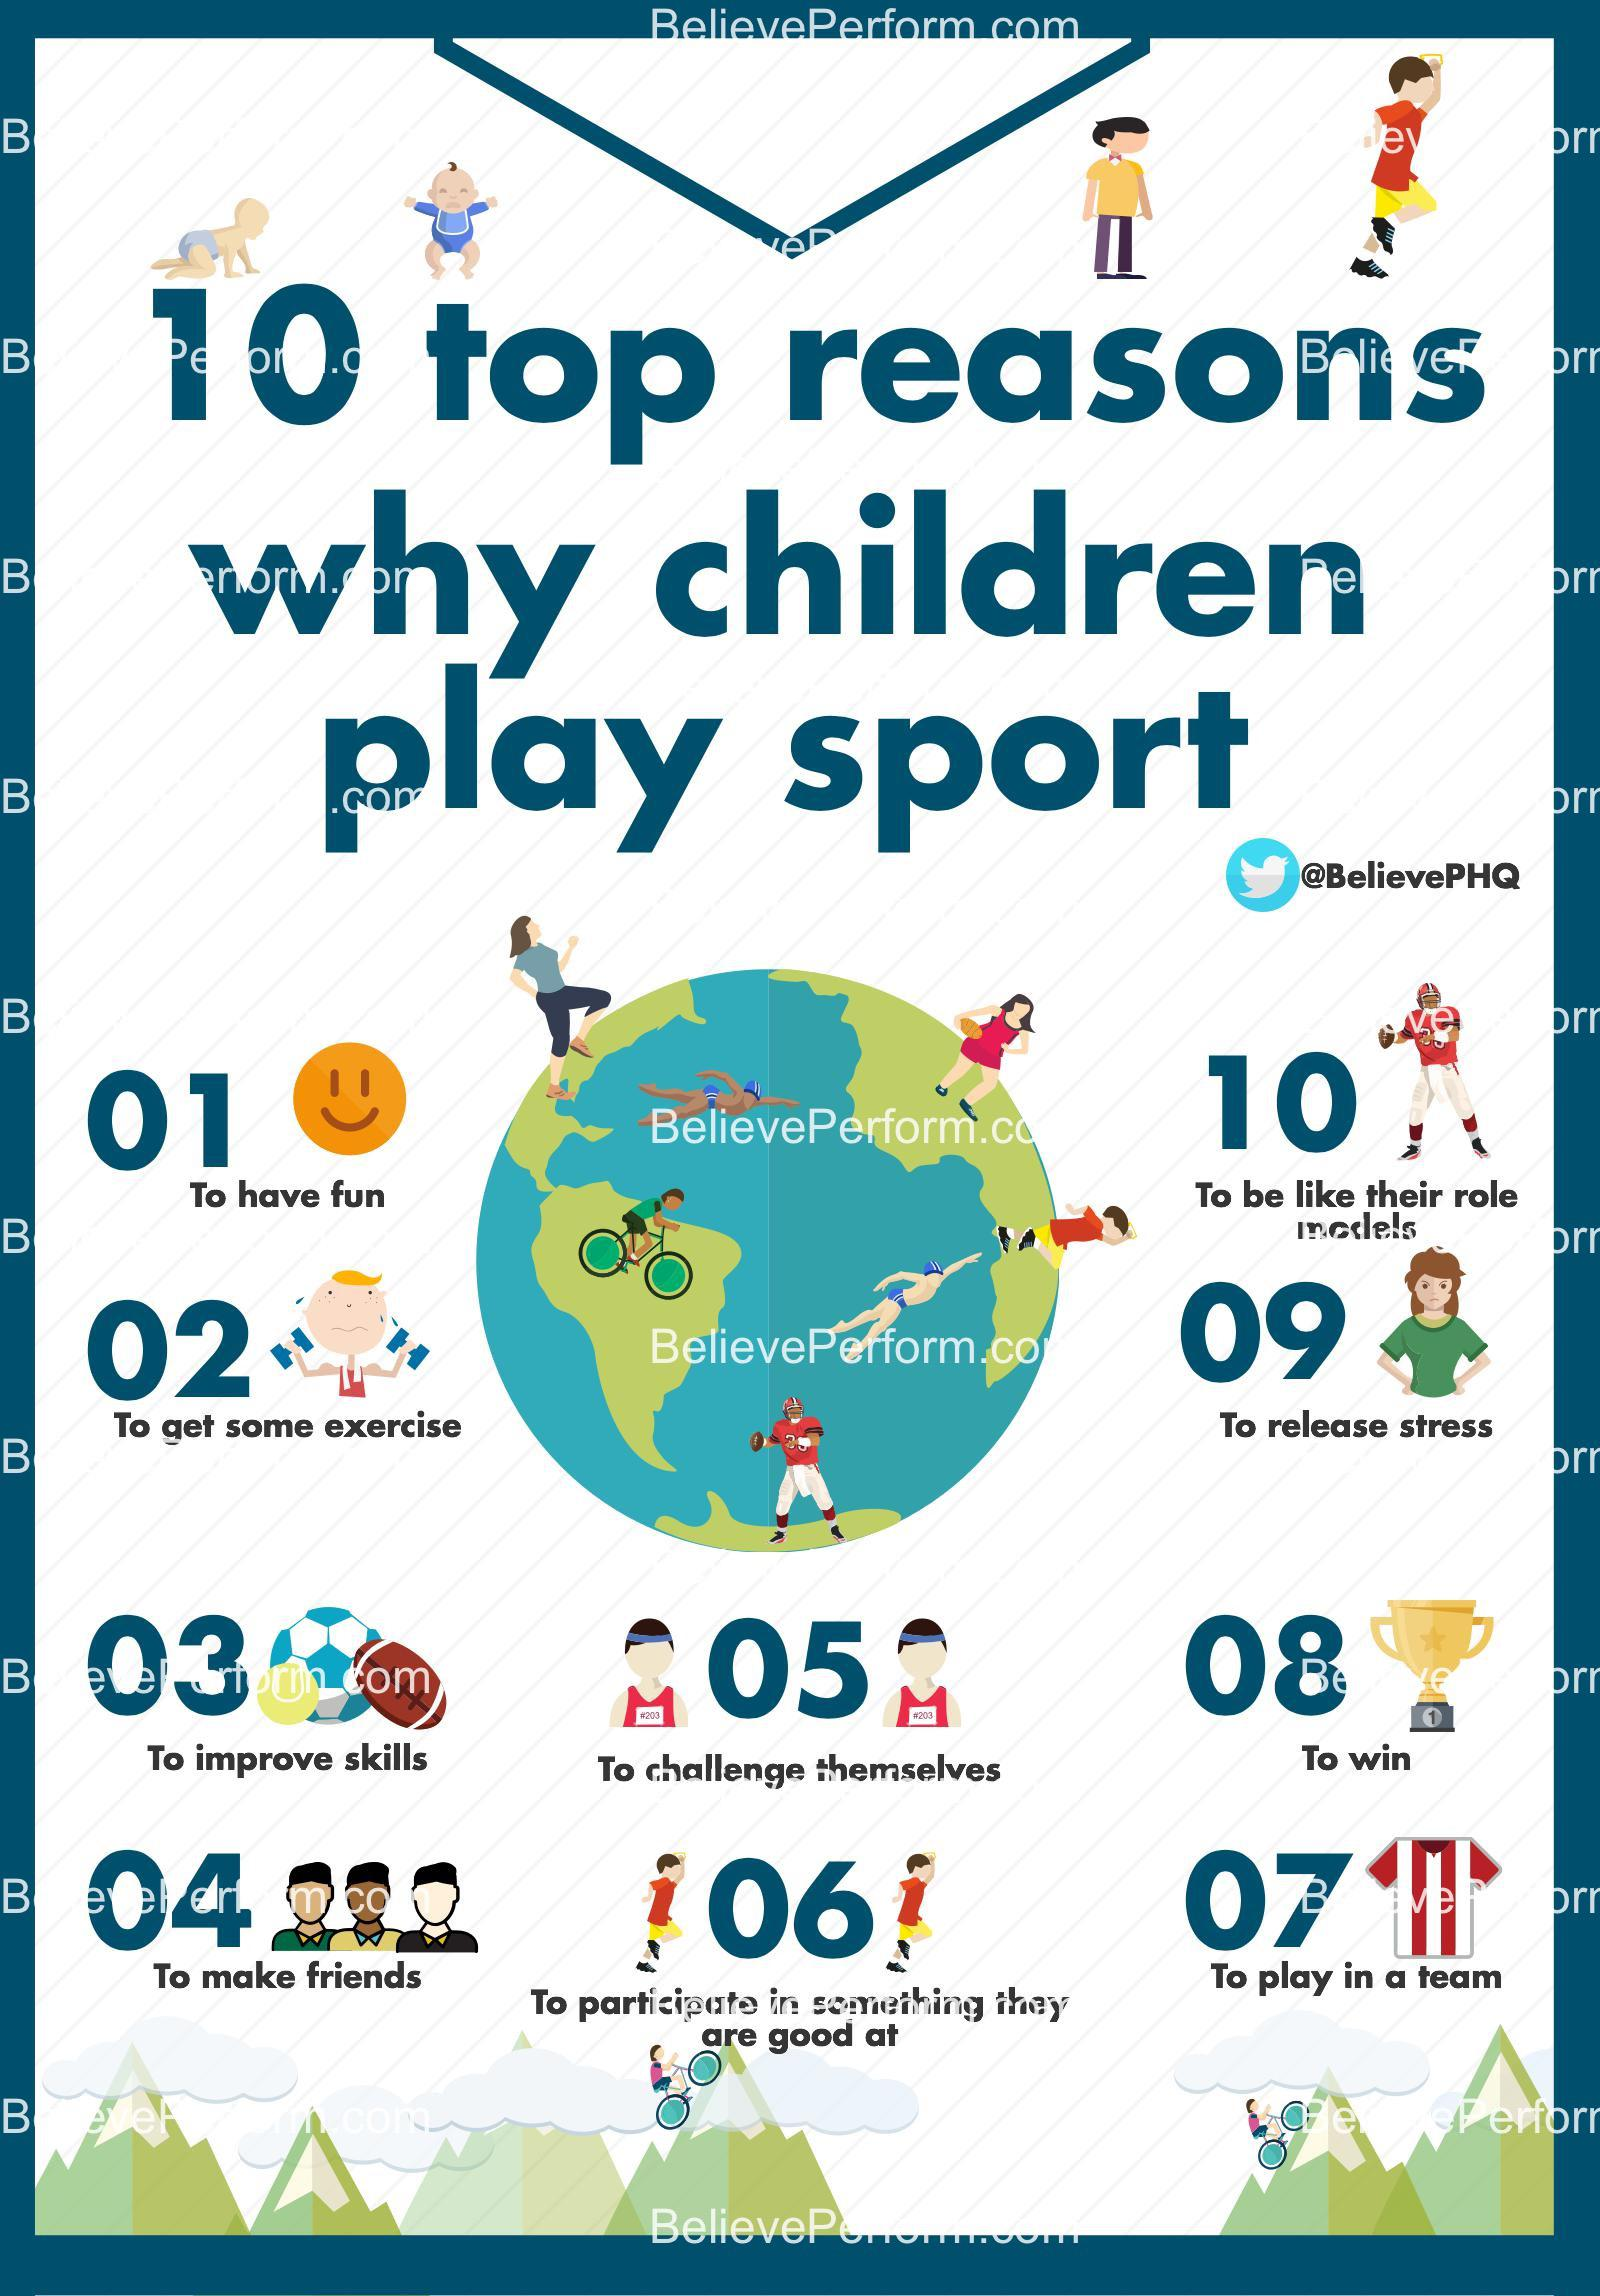 10 reasons why children play sport